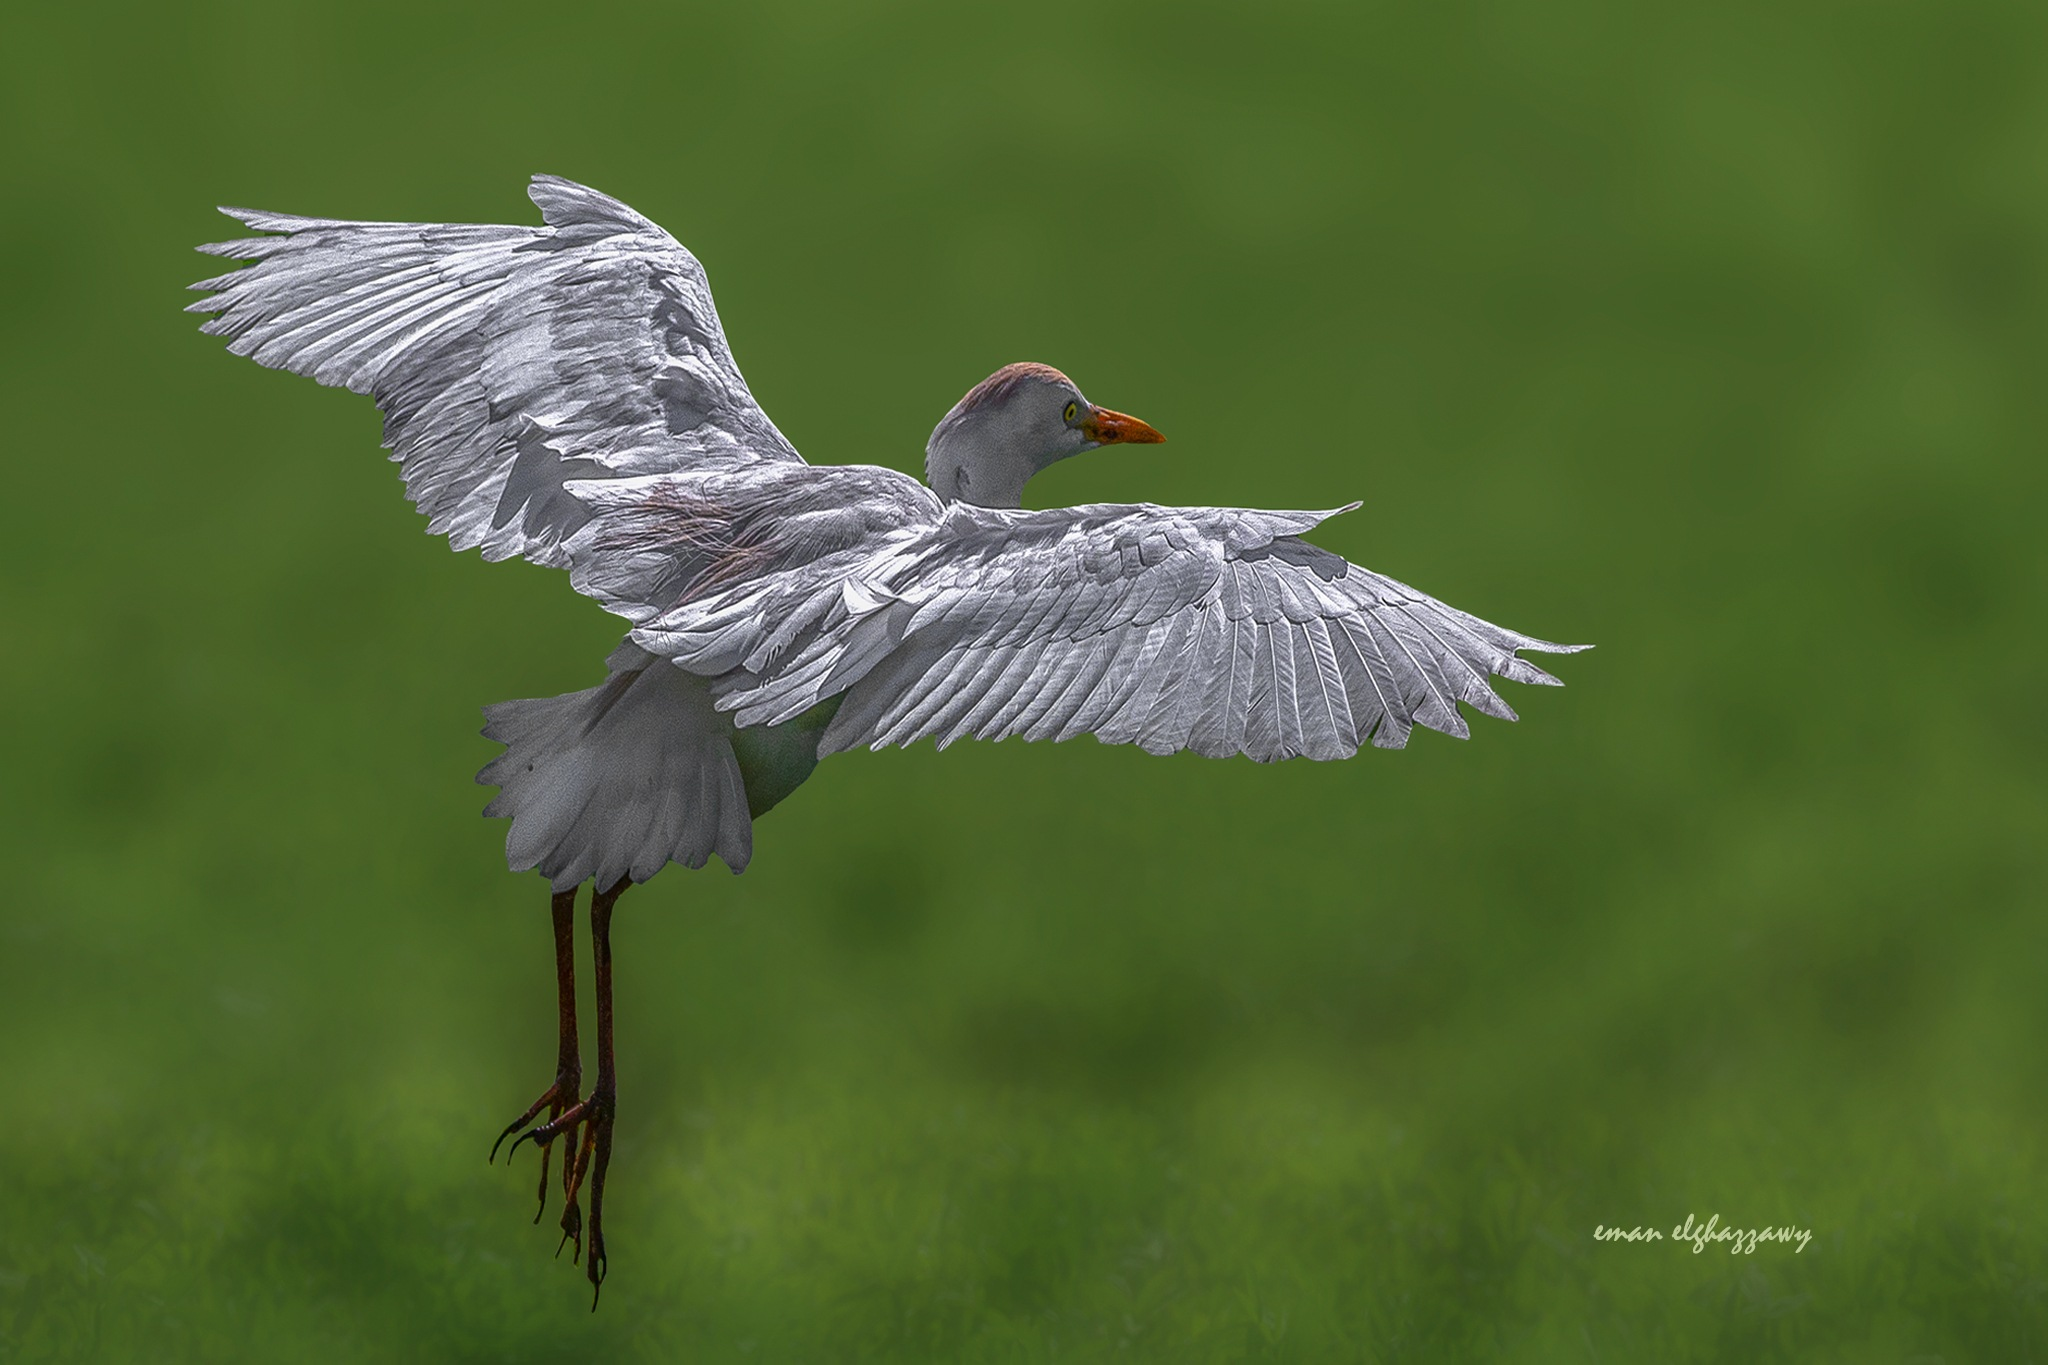 Cattle egret by Dr. Eman ELghazzawy